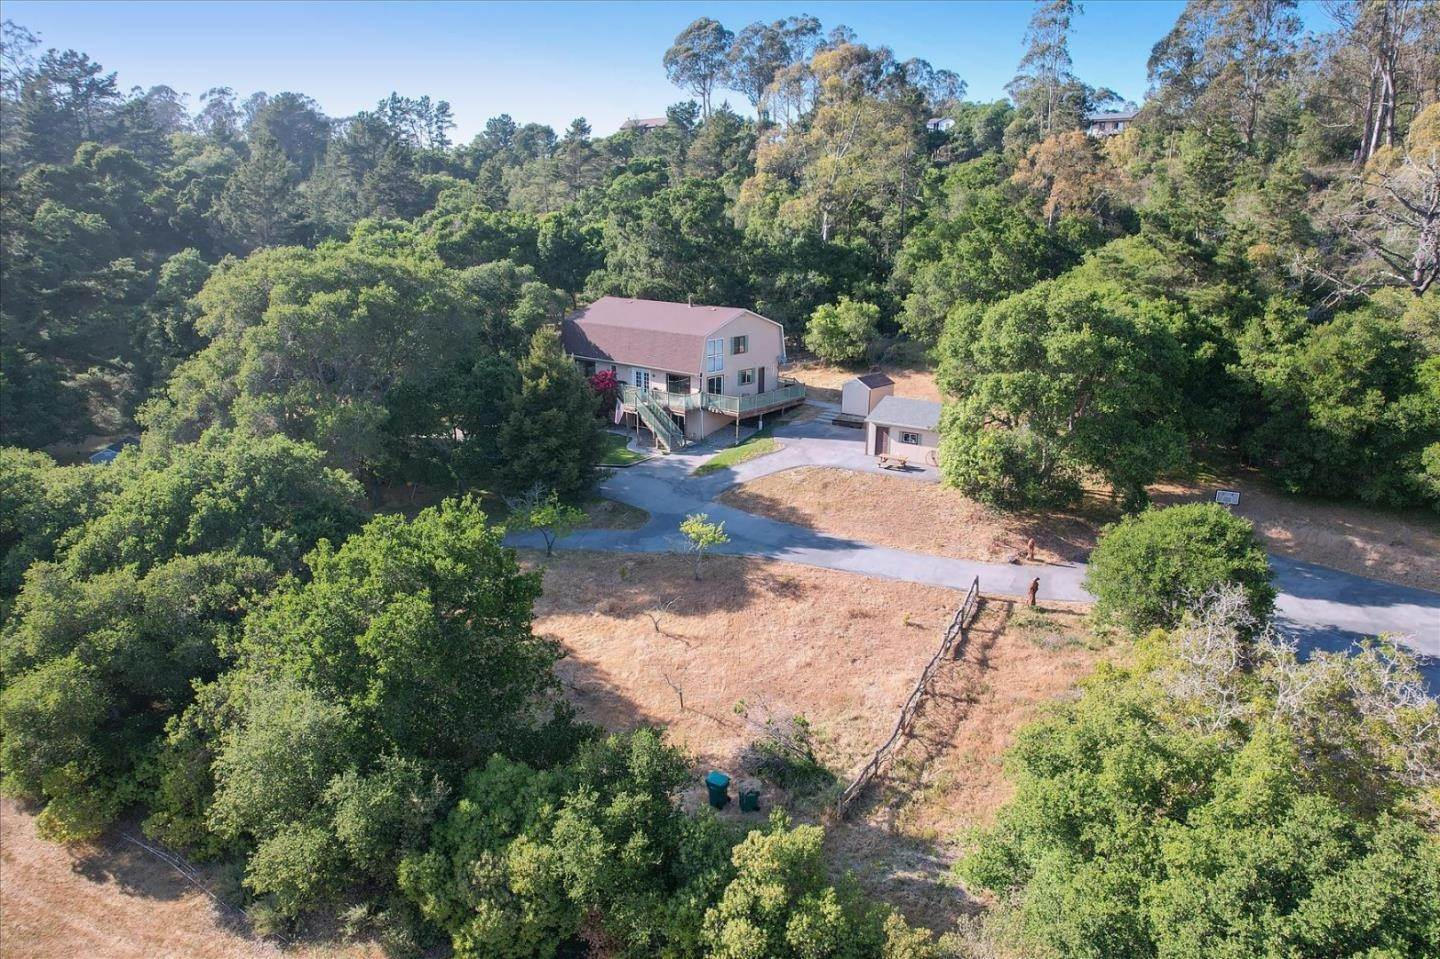 Single Family Homes for Sale at 809 Lewis Road Royal Oaks, California 95076 United States